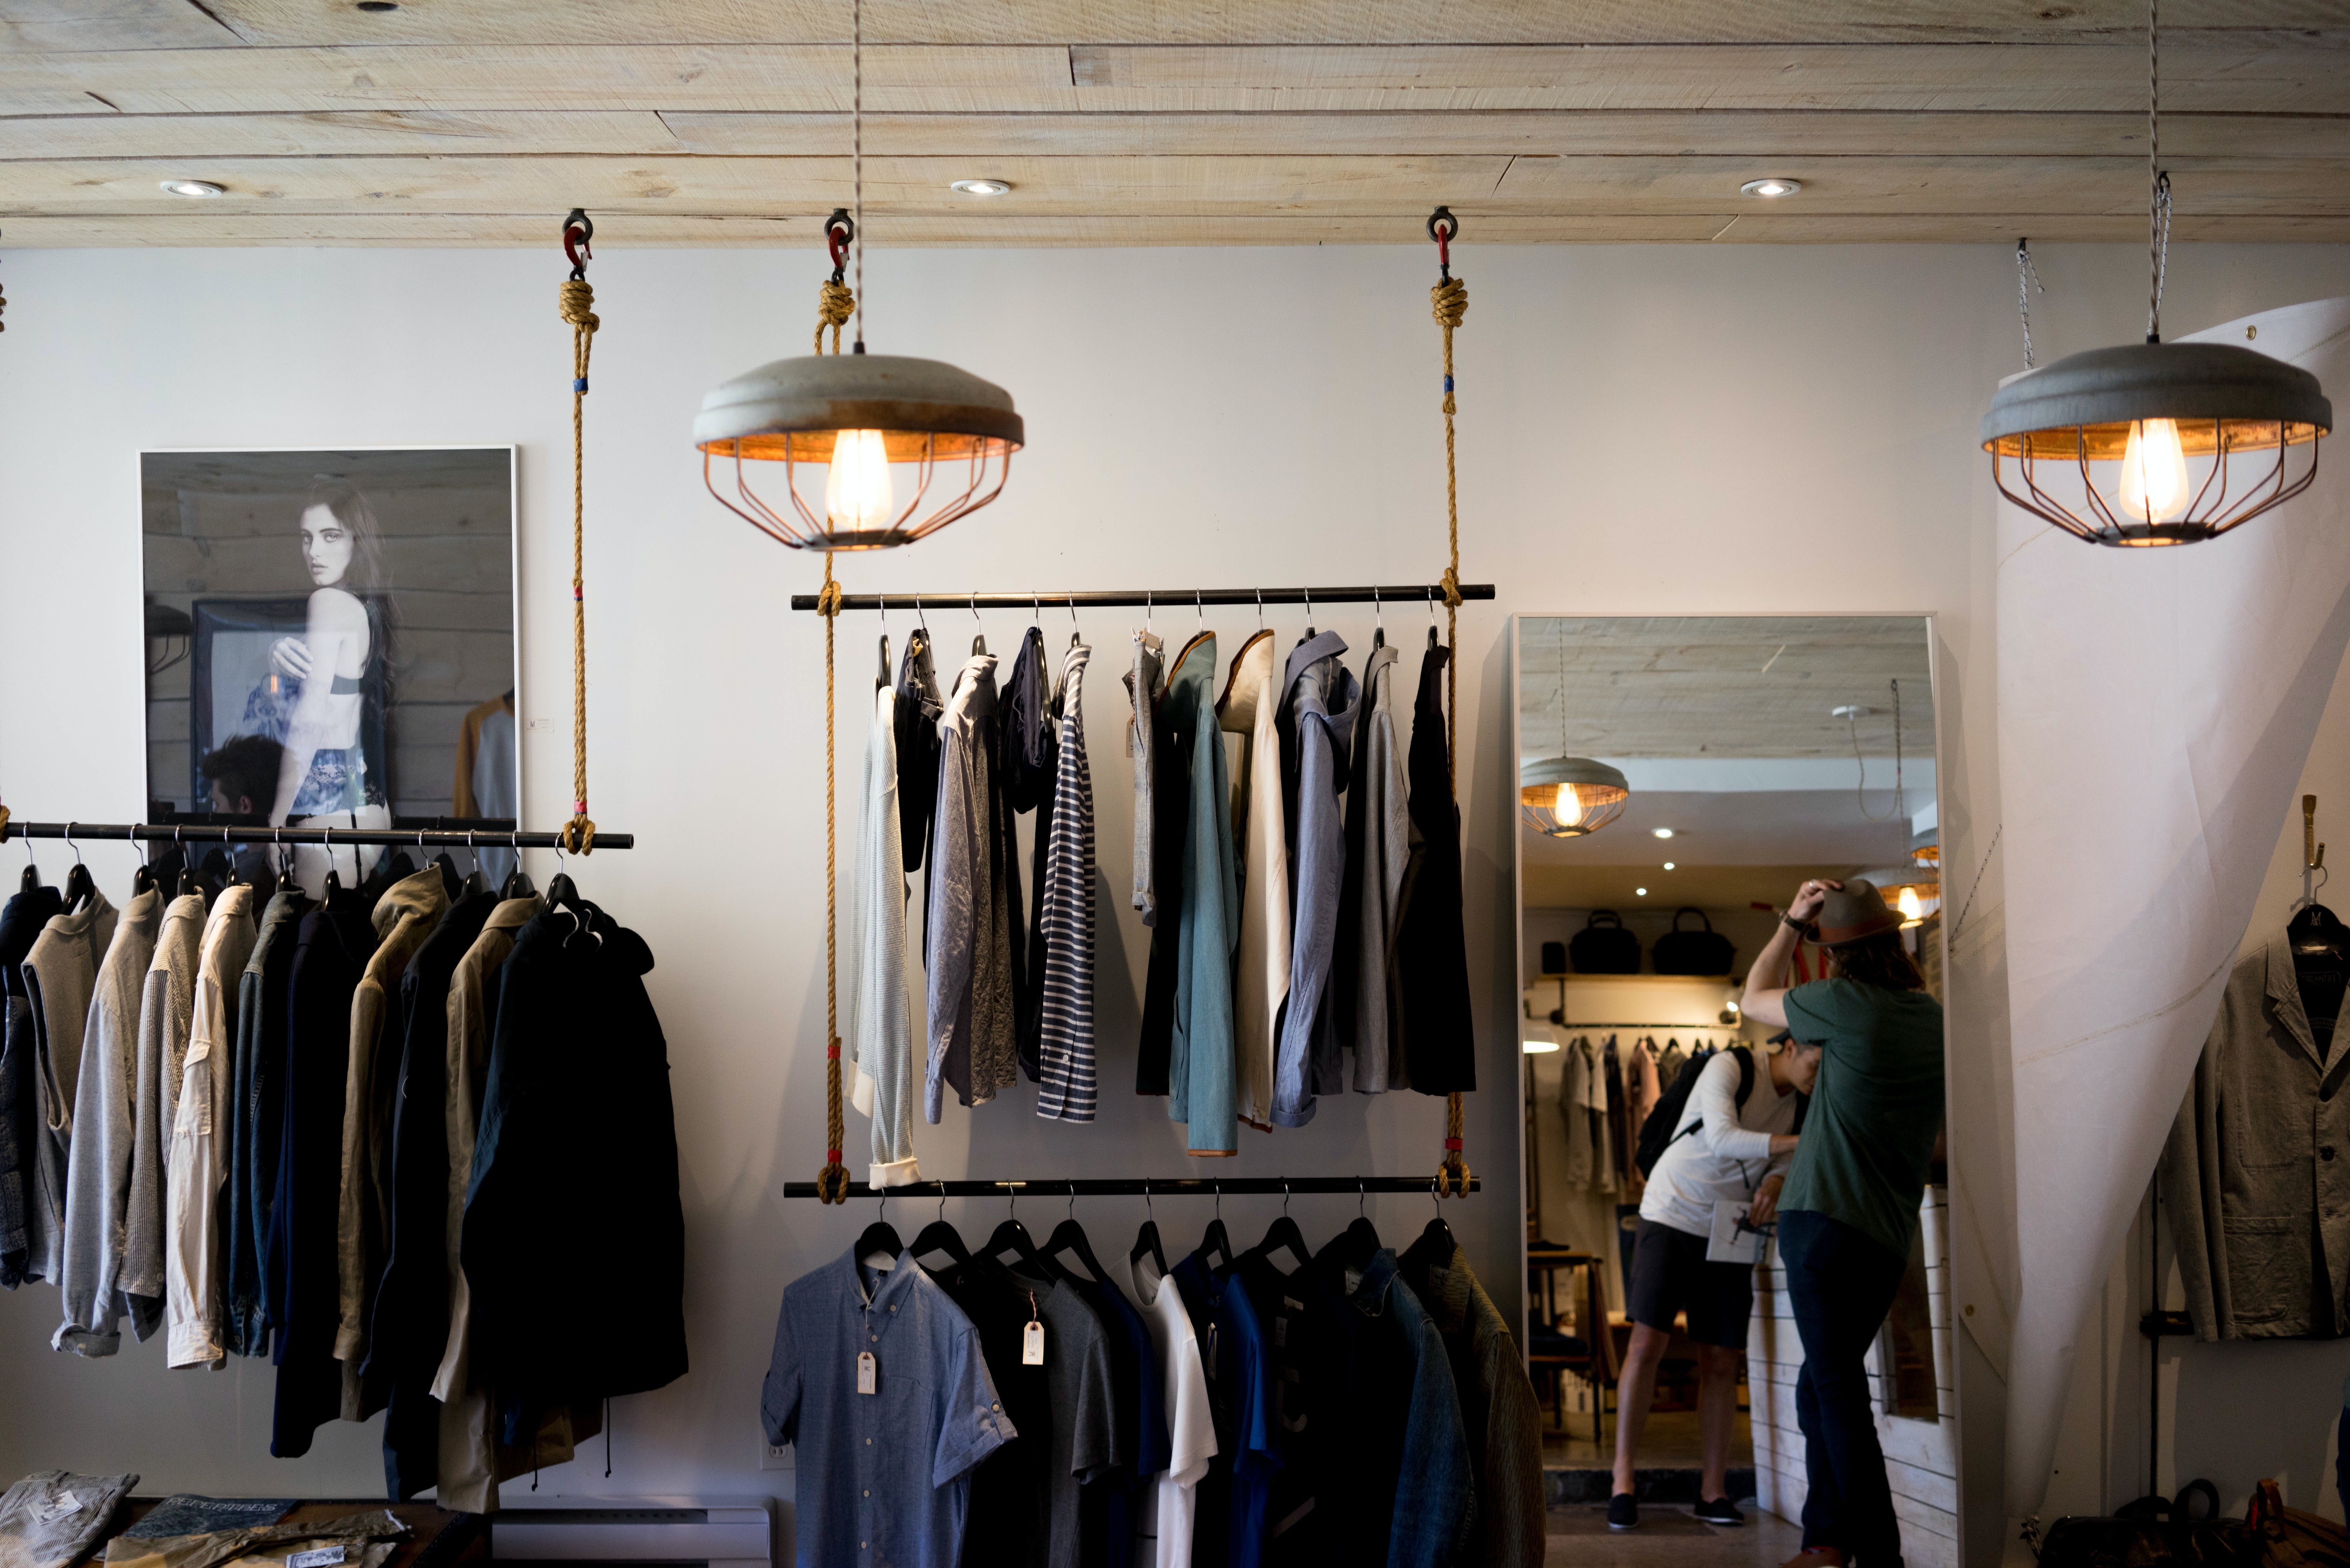 49e897638f Free stock photo of boutique, clothes, clothing store